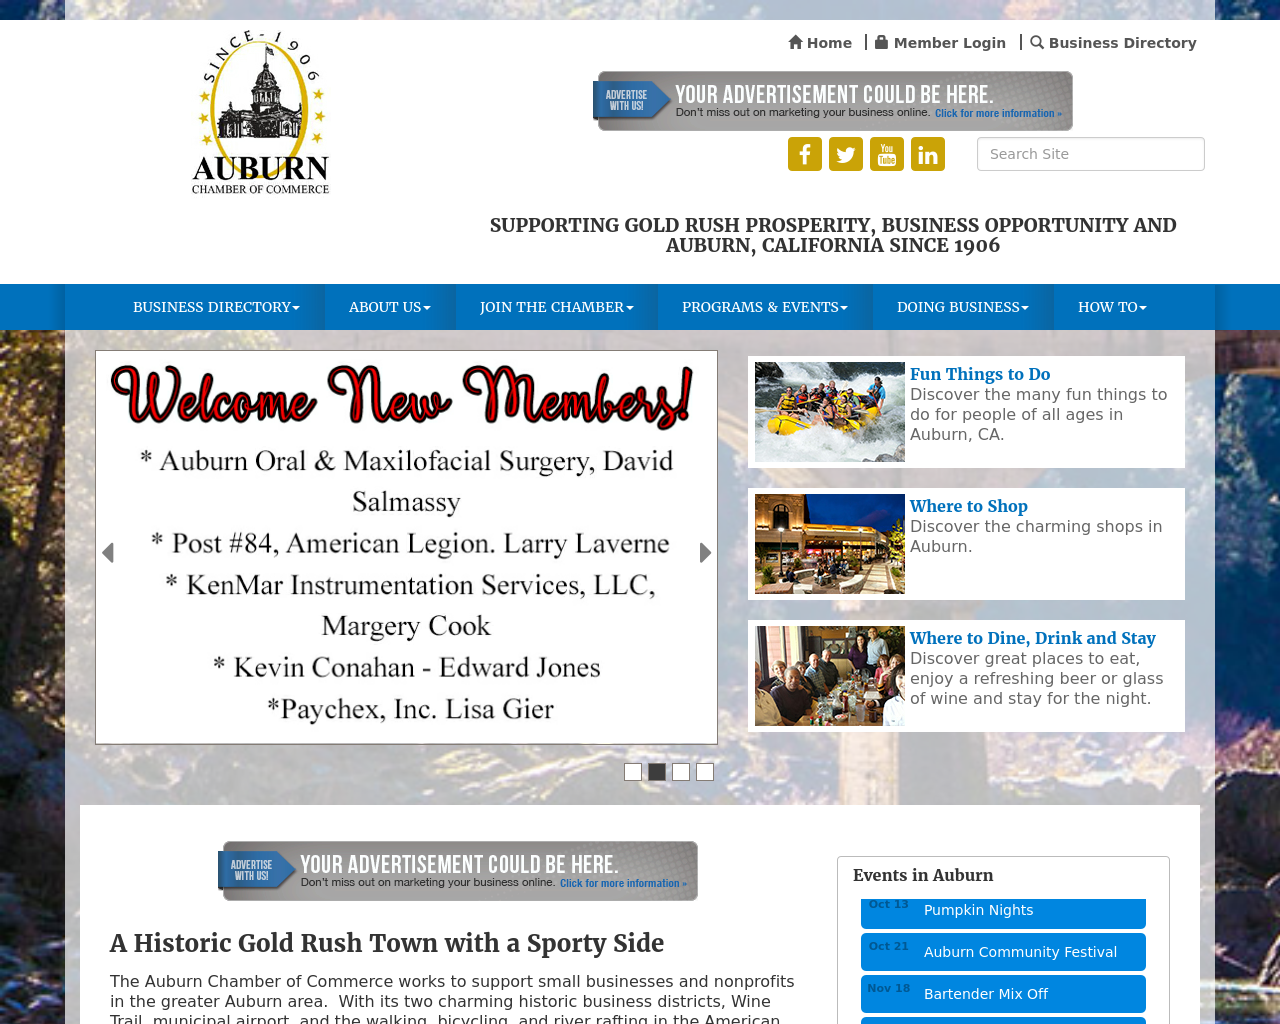 Auburn-Chamber-Of-Commerce-Advertising-Reviews-Pricing